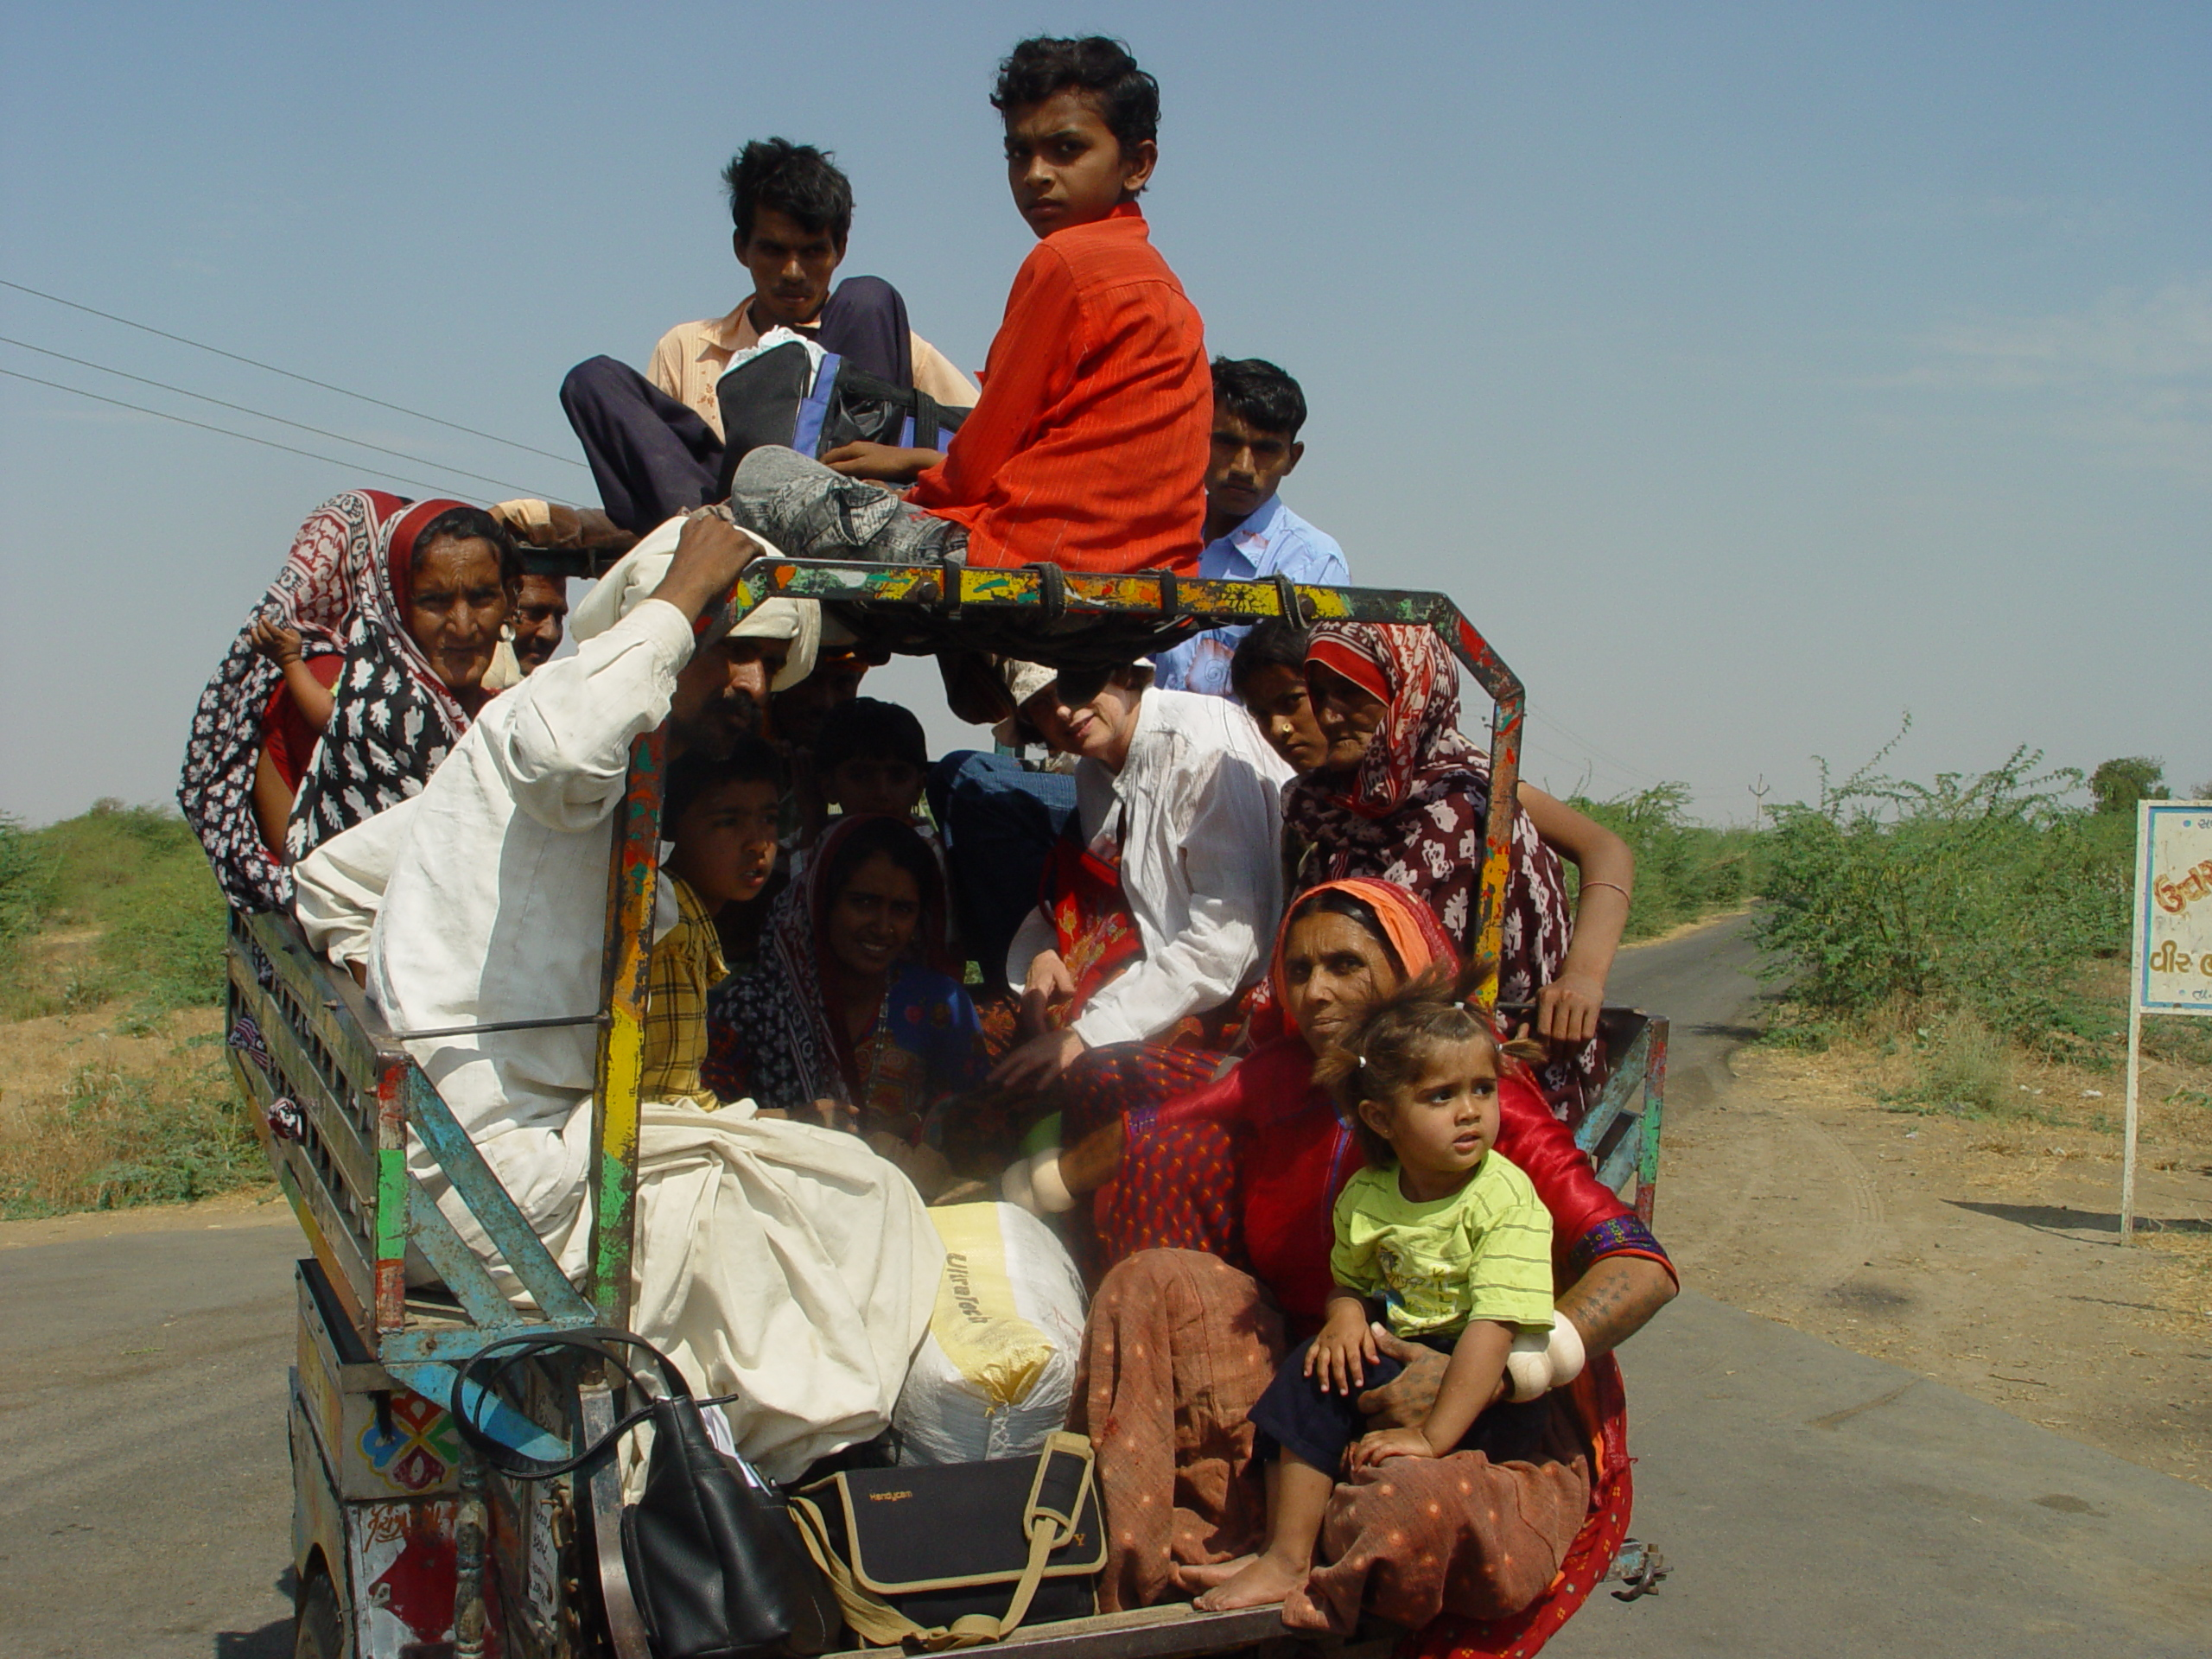 Sheila is squashed into the front in a white shirt, and hanging off the back is Puriben in the red top with her grandchild, en route for a day's work travelling to supervise the work of local embroiderers in the villages she is responsible for.